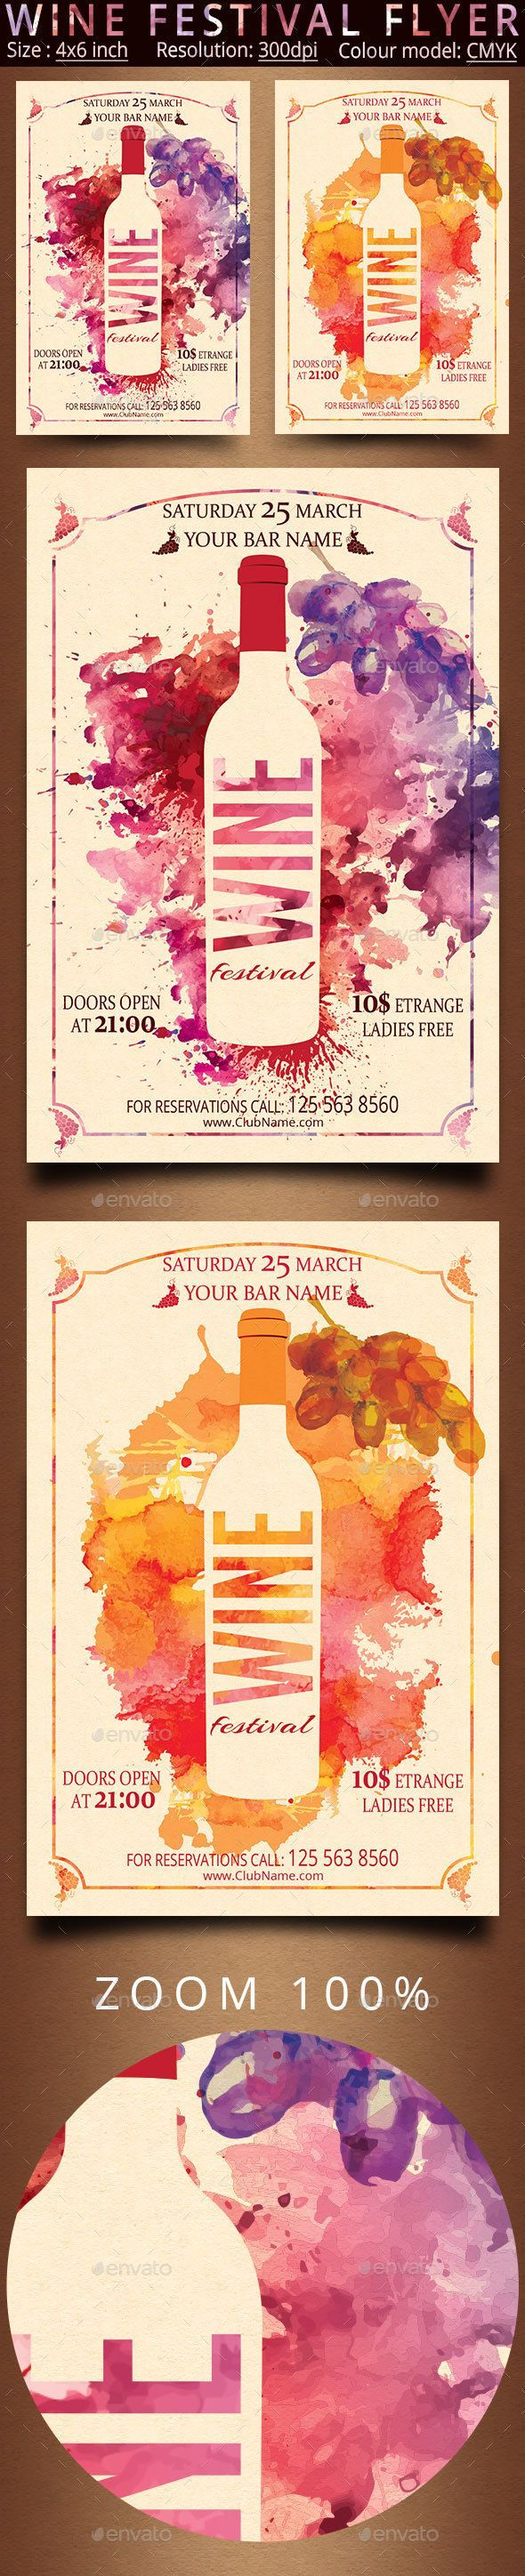 Poster design free download - Wine Festival Flyer Graphic Design Flyerevent Poster